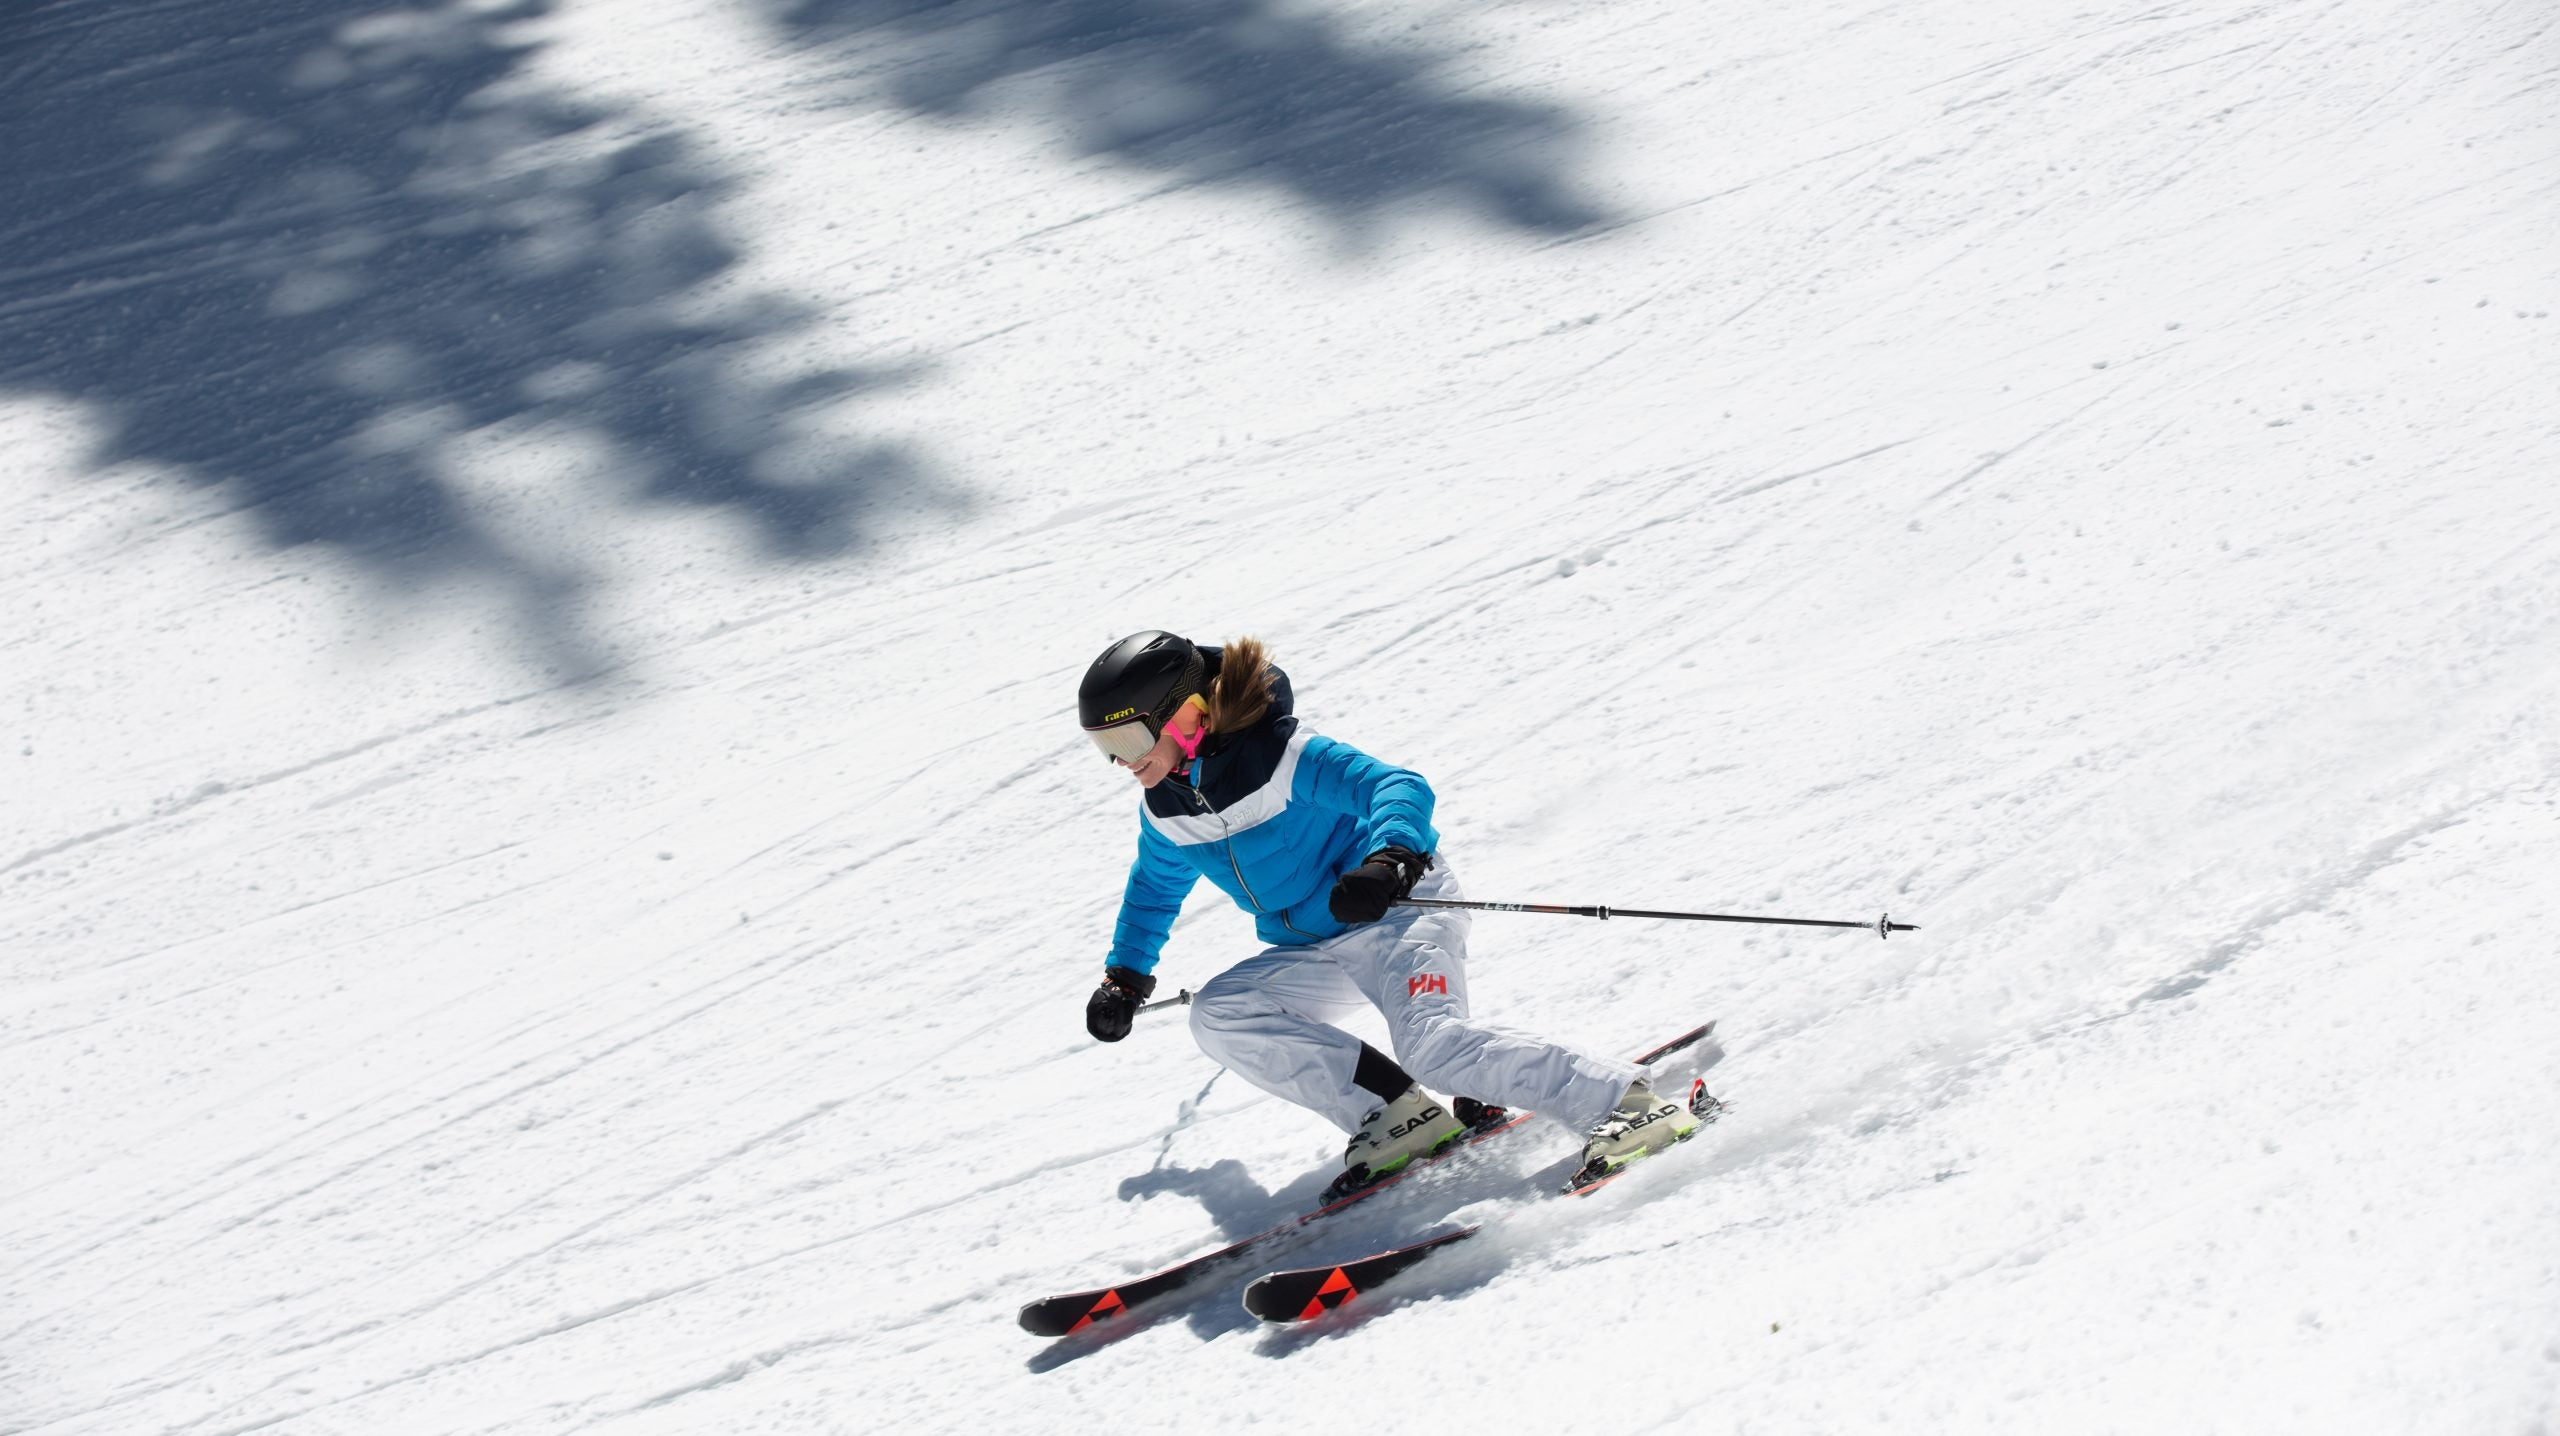 10 Frontside Skis That Don't Have a Speed Limit